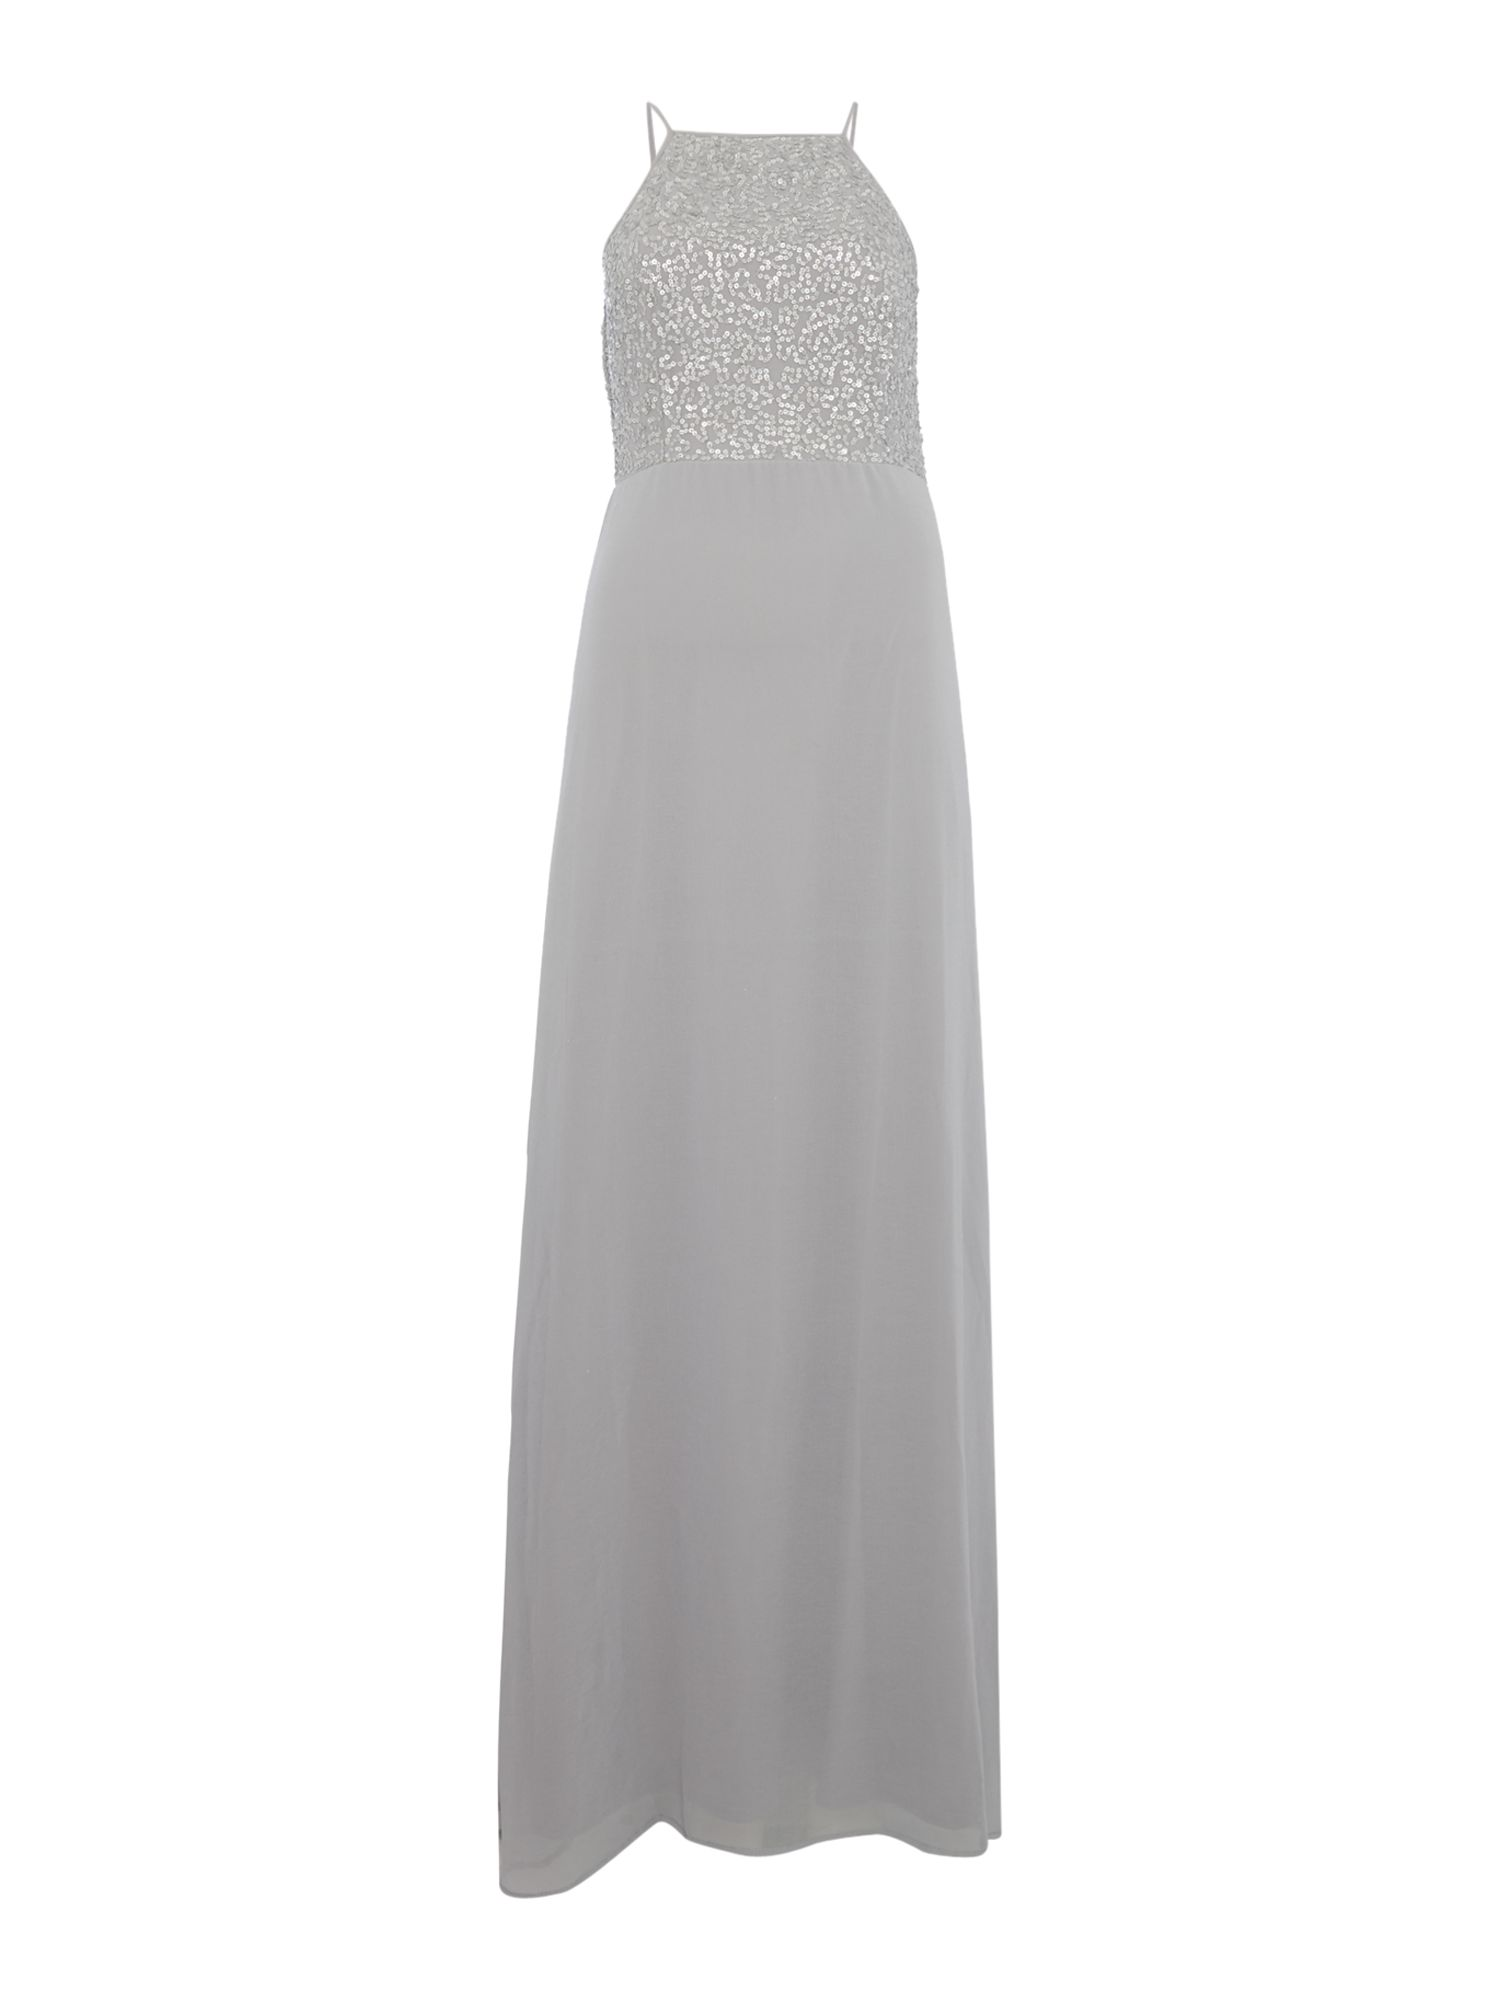 Lace and Beads Sleeveless halter neck embellished top maxi dress, Grey